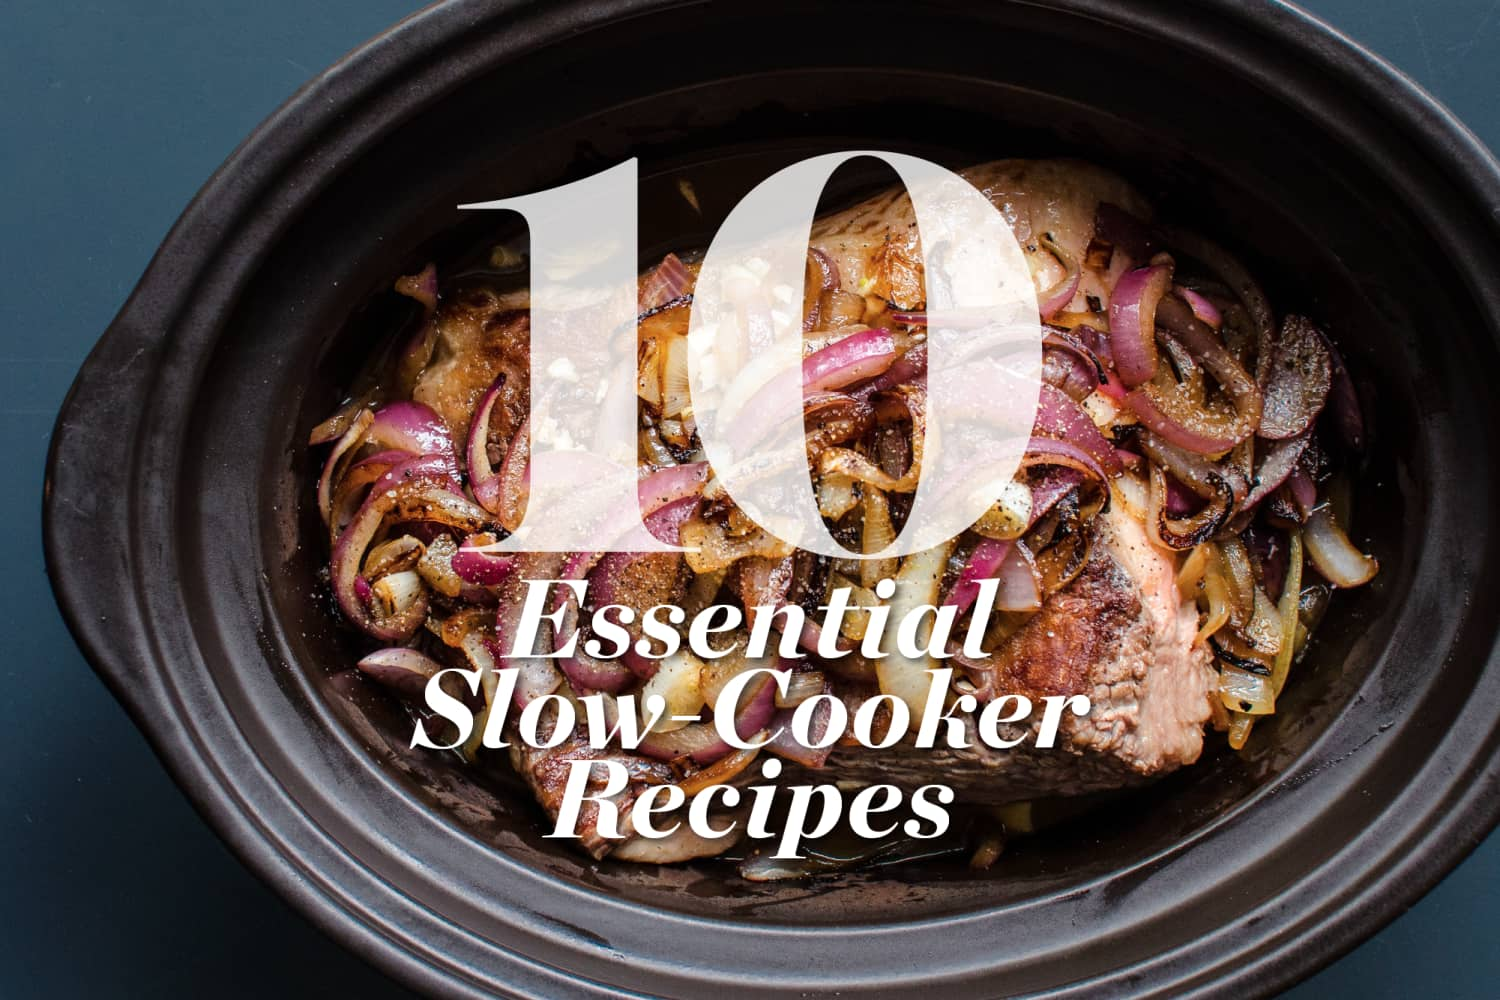 The 10 Most Essential Slow Cooker Recipes for Fall